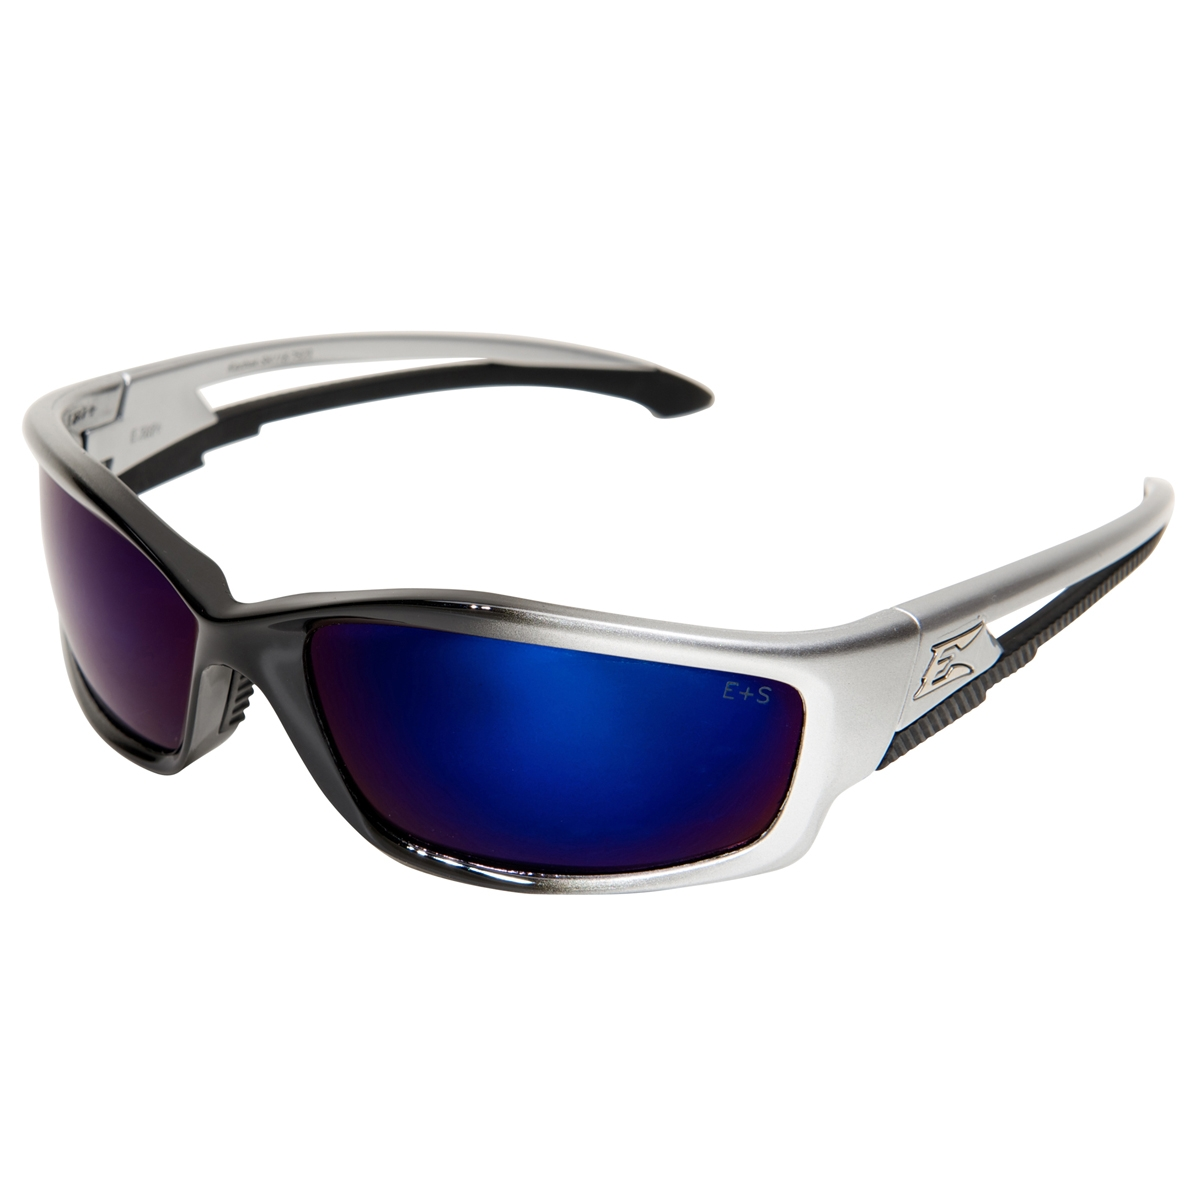 Edge Silver Mirror Blue Lens Safety Glasses